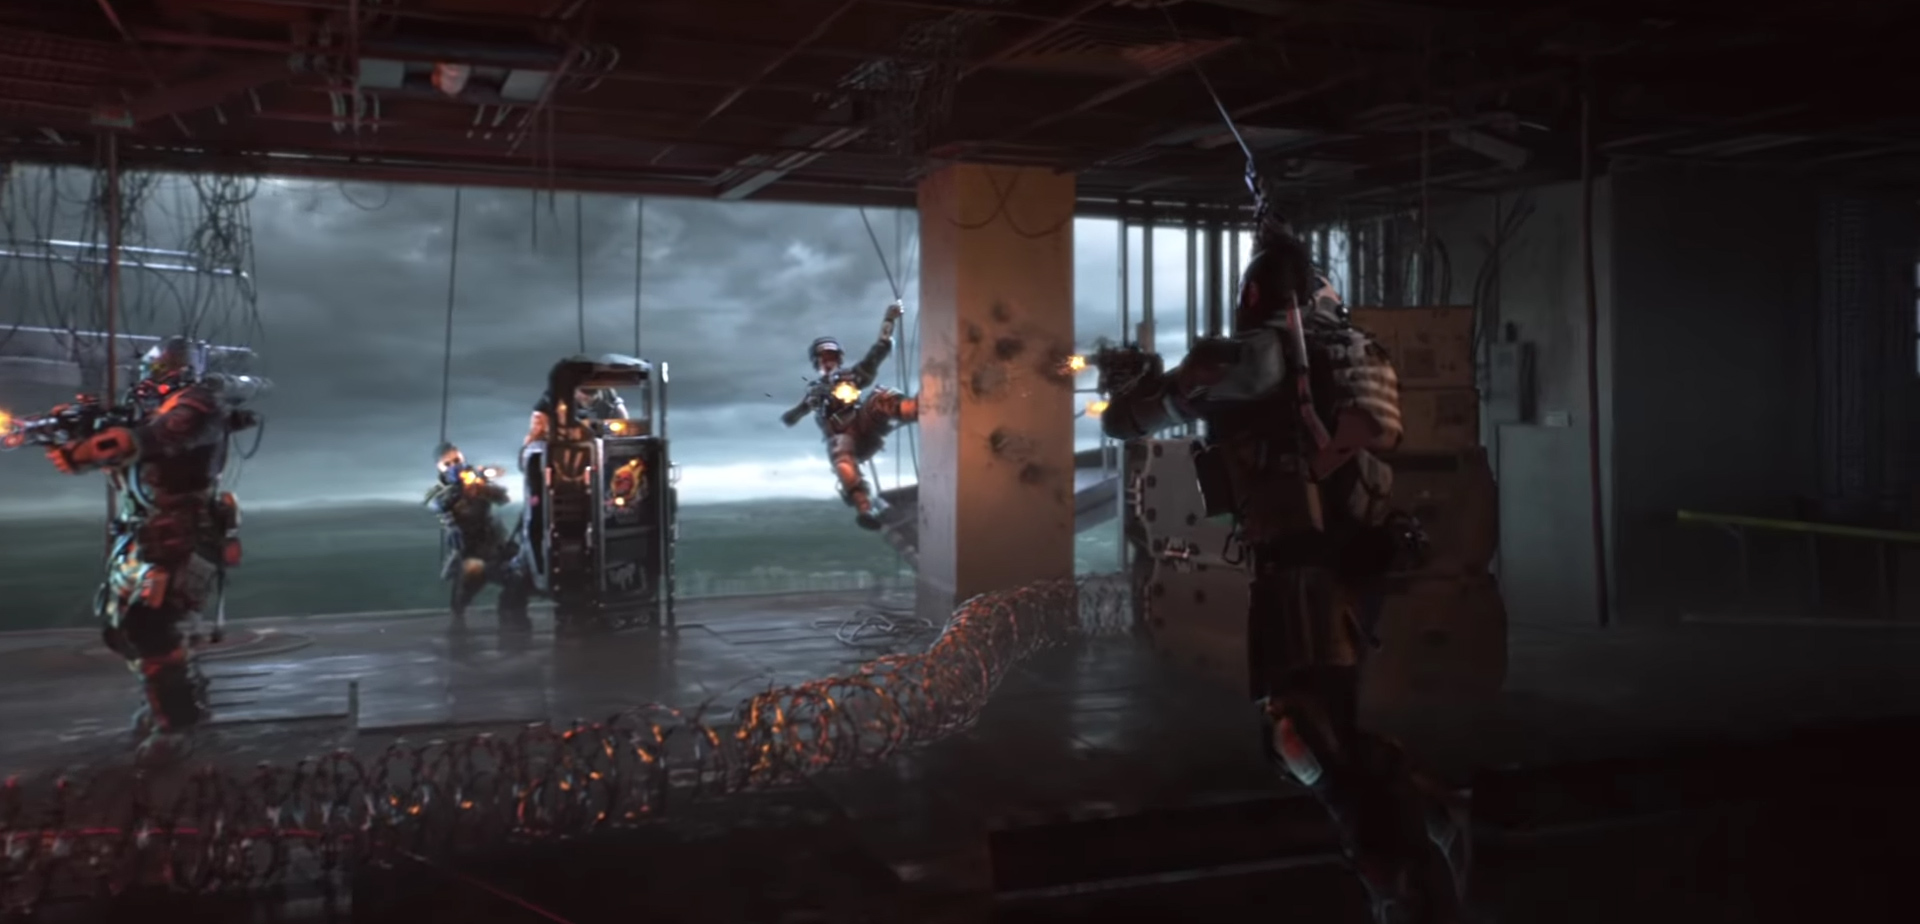 Blackout, a Battle Royale mode, is coming to Call of Duty: Black Ops 4 screenshot